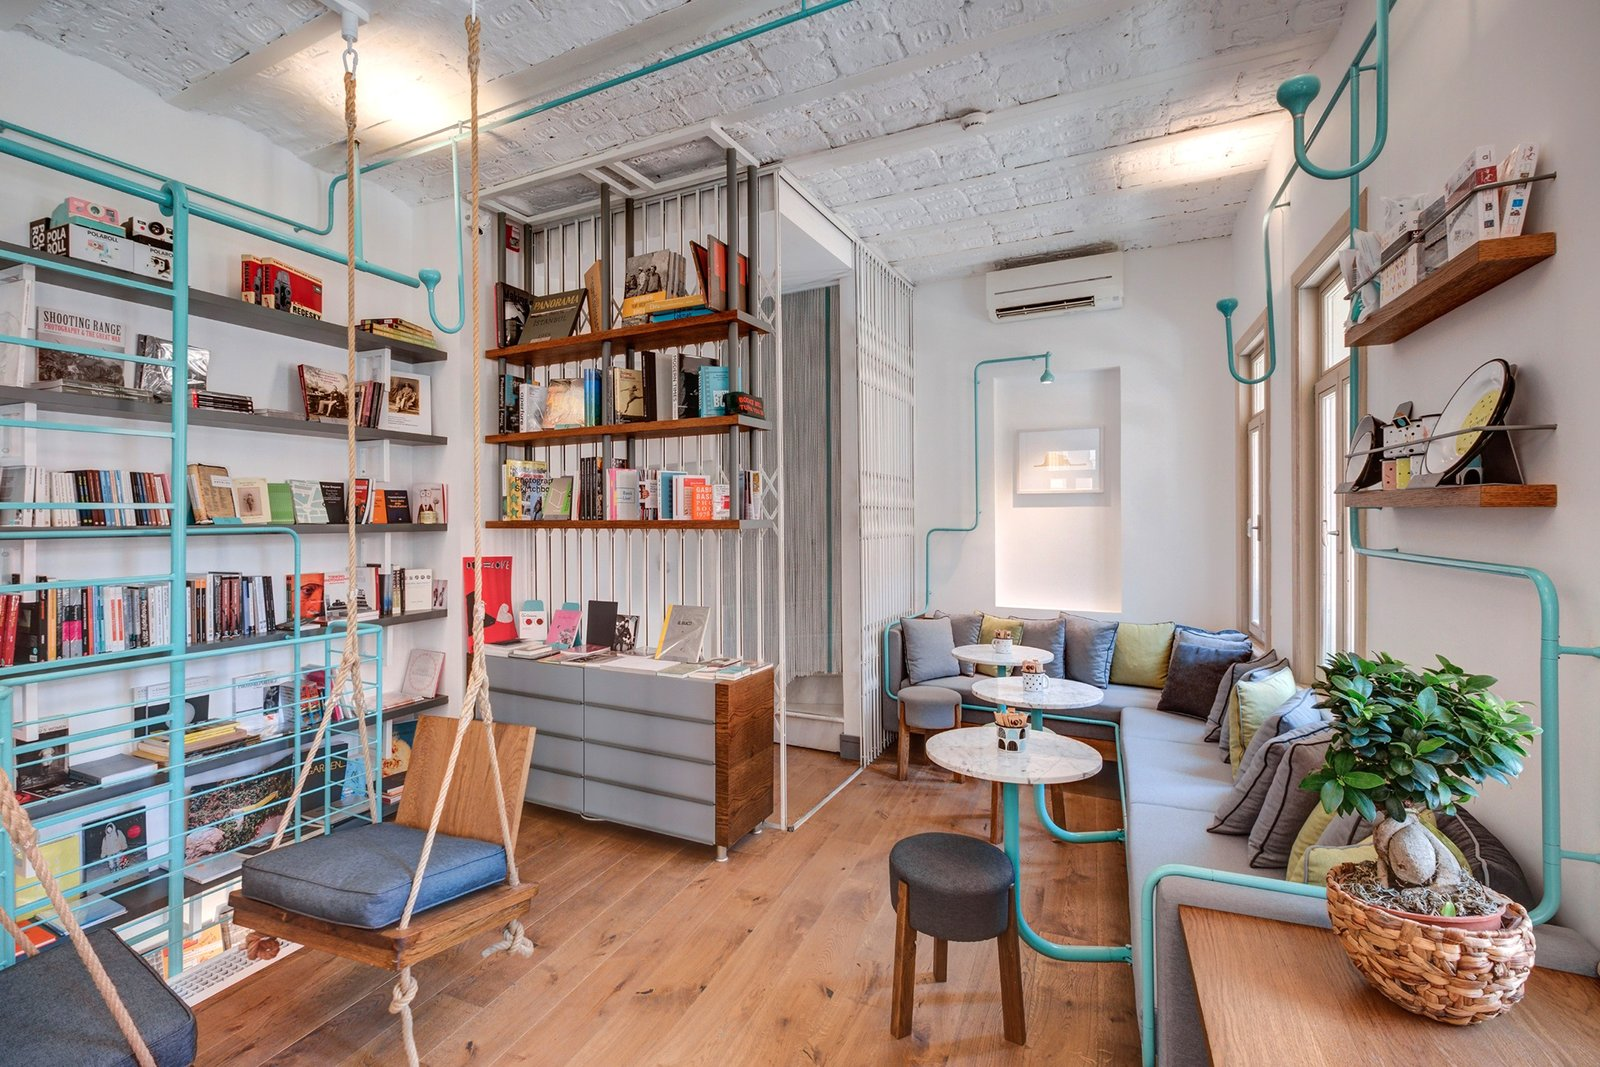 The World's Top Bookshops Will Make You Want to Drop Everything and Read